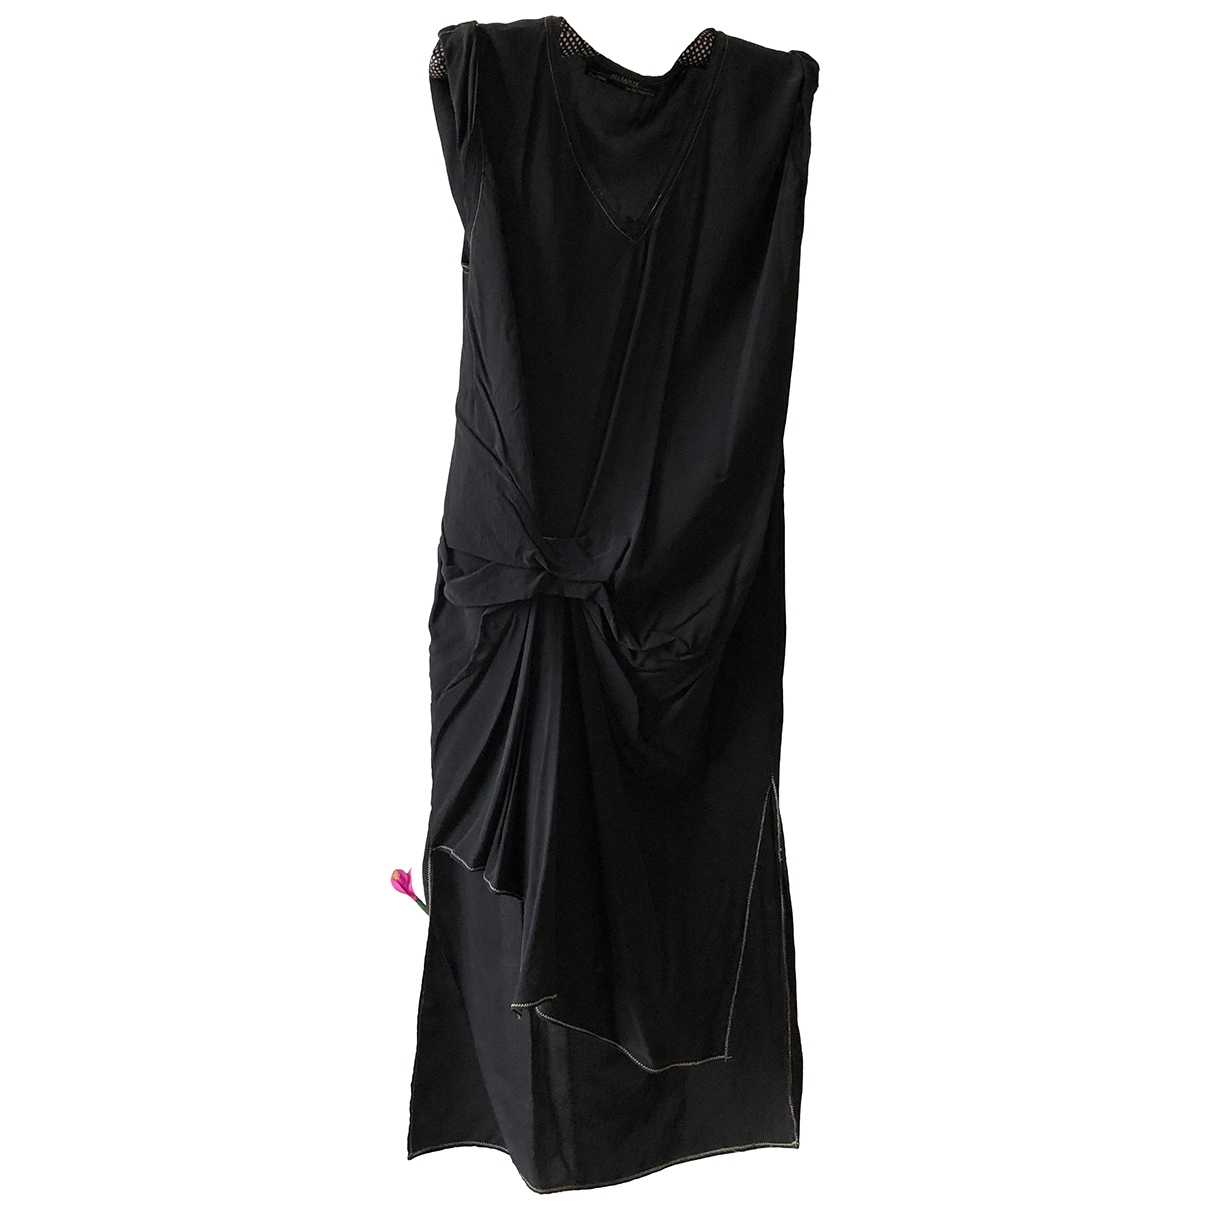 All Saints \N Black Silk dress for Women 10 UK